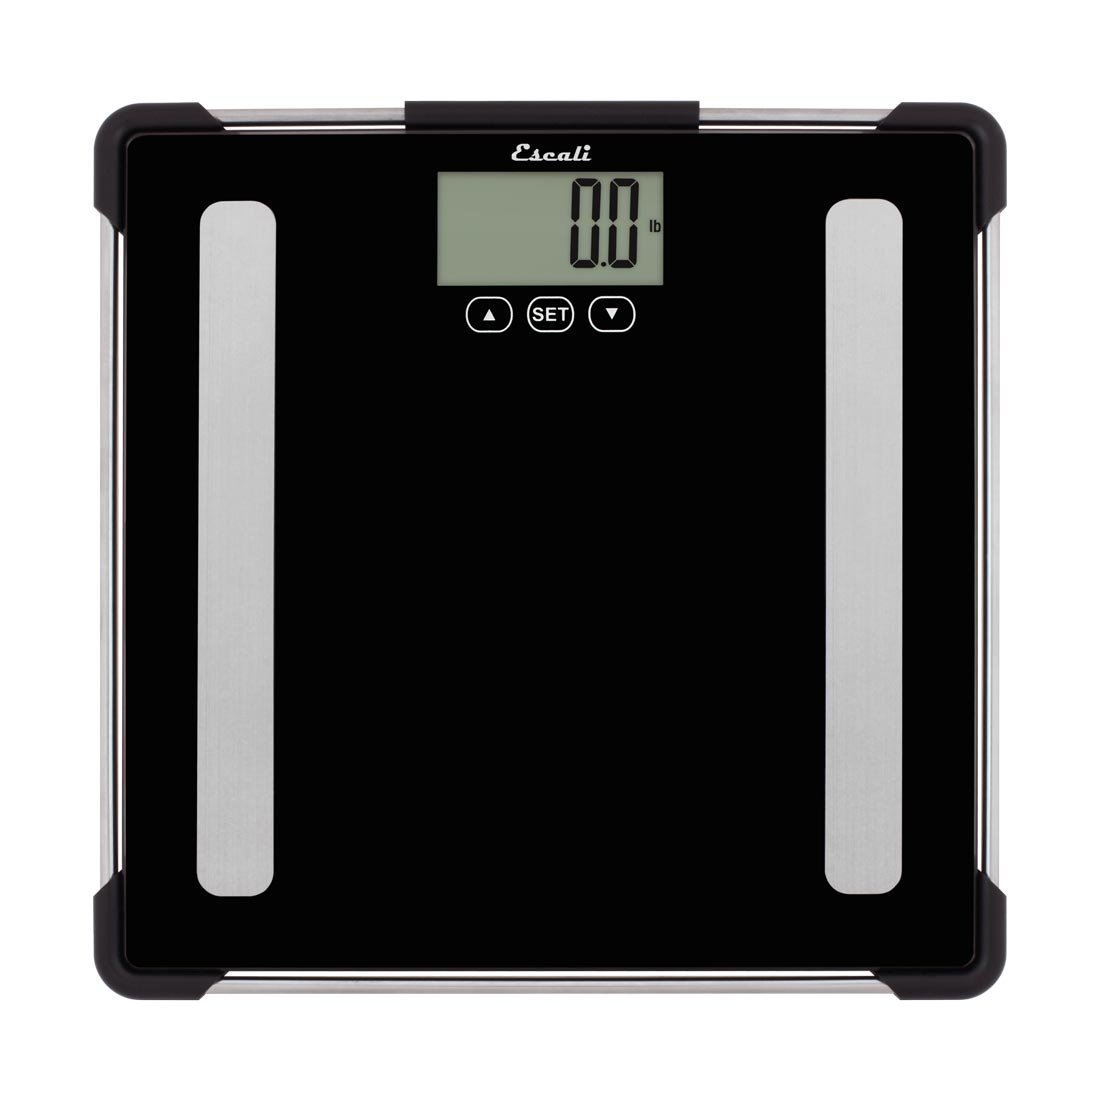 Escali BF180 Advanced Bioelectrical Impedance Analysis (BIA) Technology Calculates Weight, Body Fat, Body Water, Muscle Mass and Bone Density, LCD Digital Display, 400lb Capacity, Black by Escali Bath